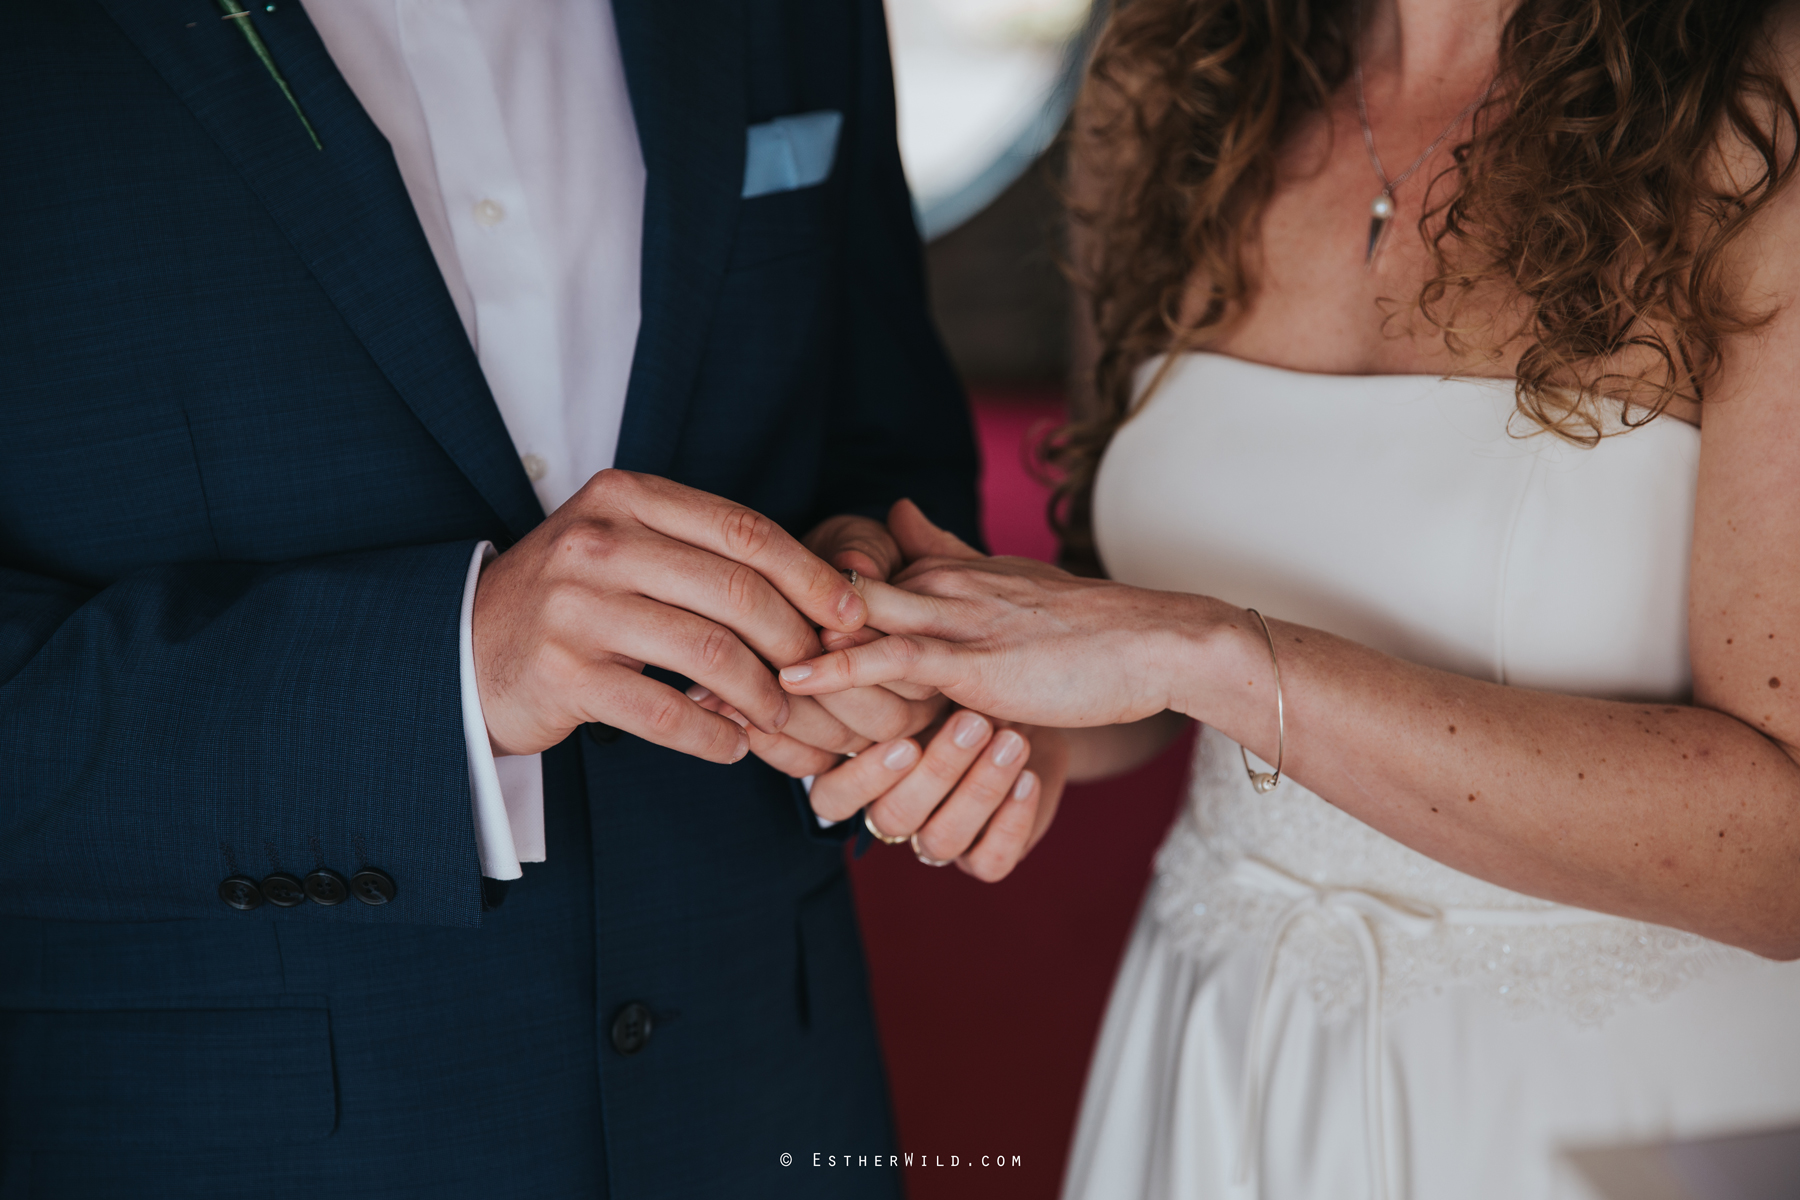 The_BoatHouse_Wedding_Venue_Ormesby_Norfolk_Broads_Boat_Wedding_Photography_Esther_Wild_Photographer_IMG_1127.jpg